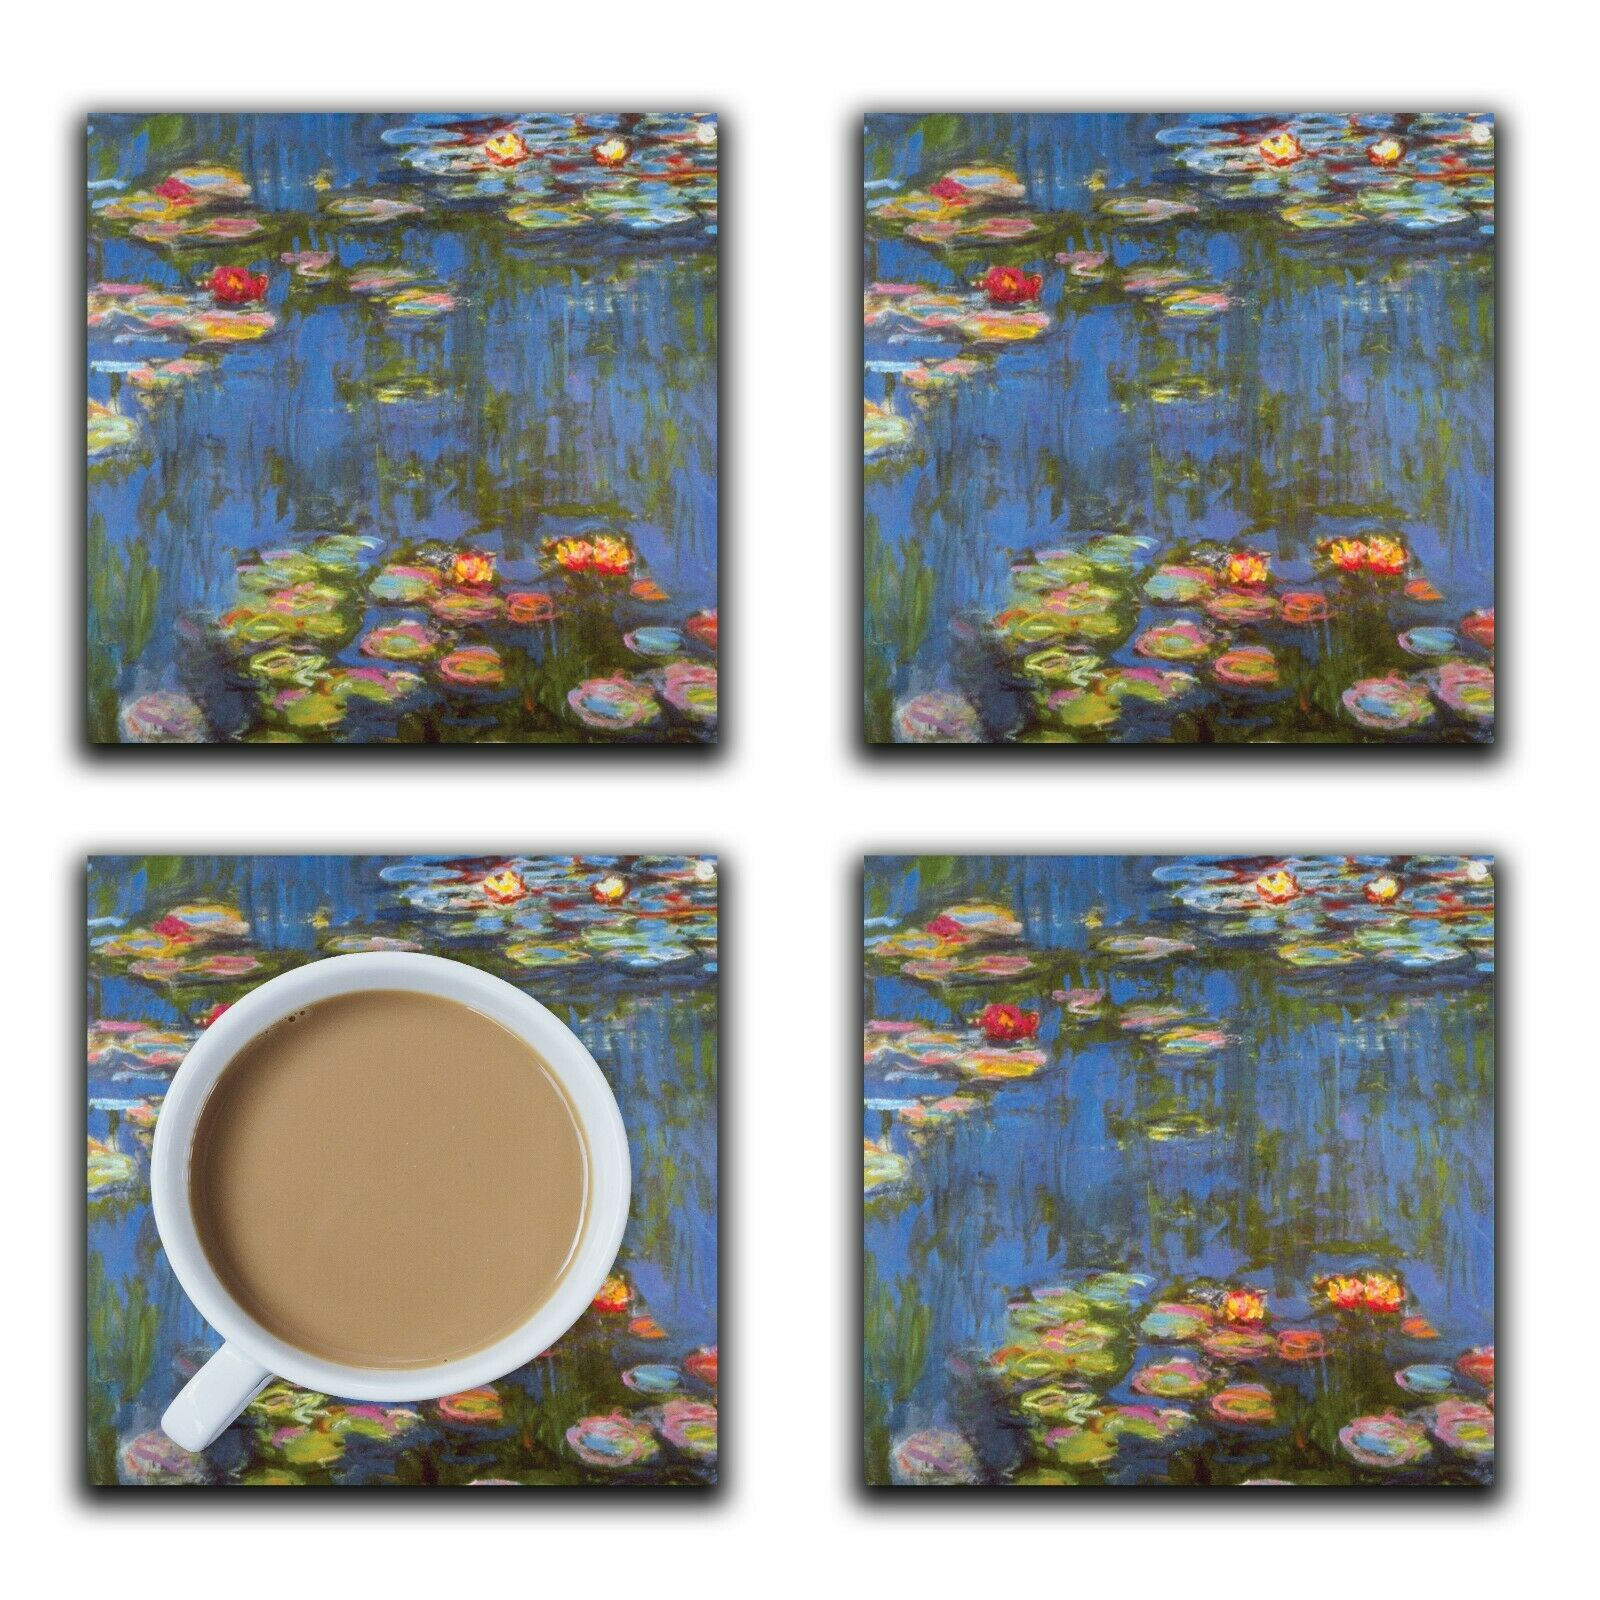 Embossi Printed Monet Waterlilies, wood or ceramic tile, set of 4